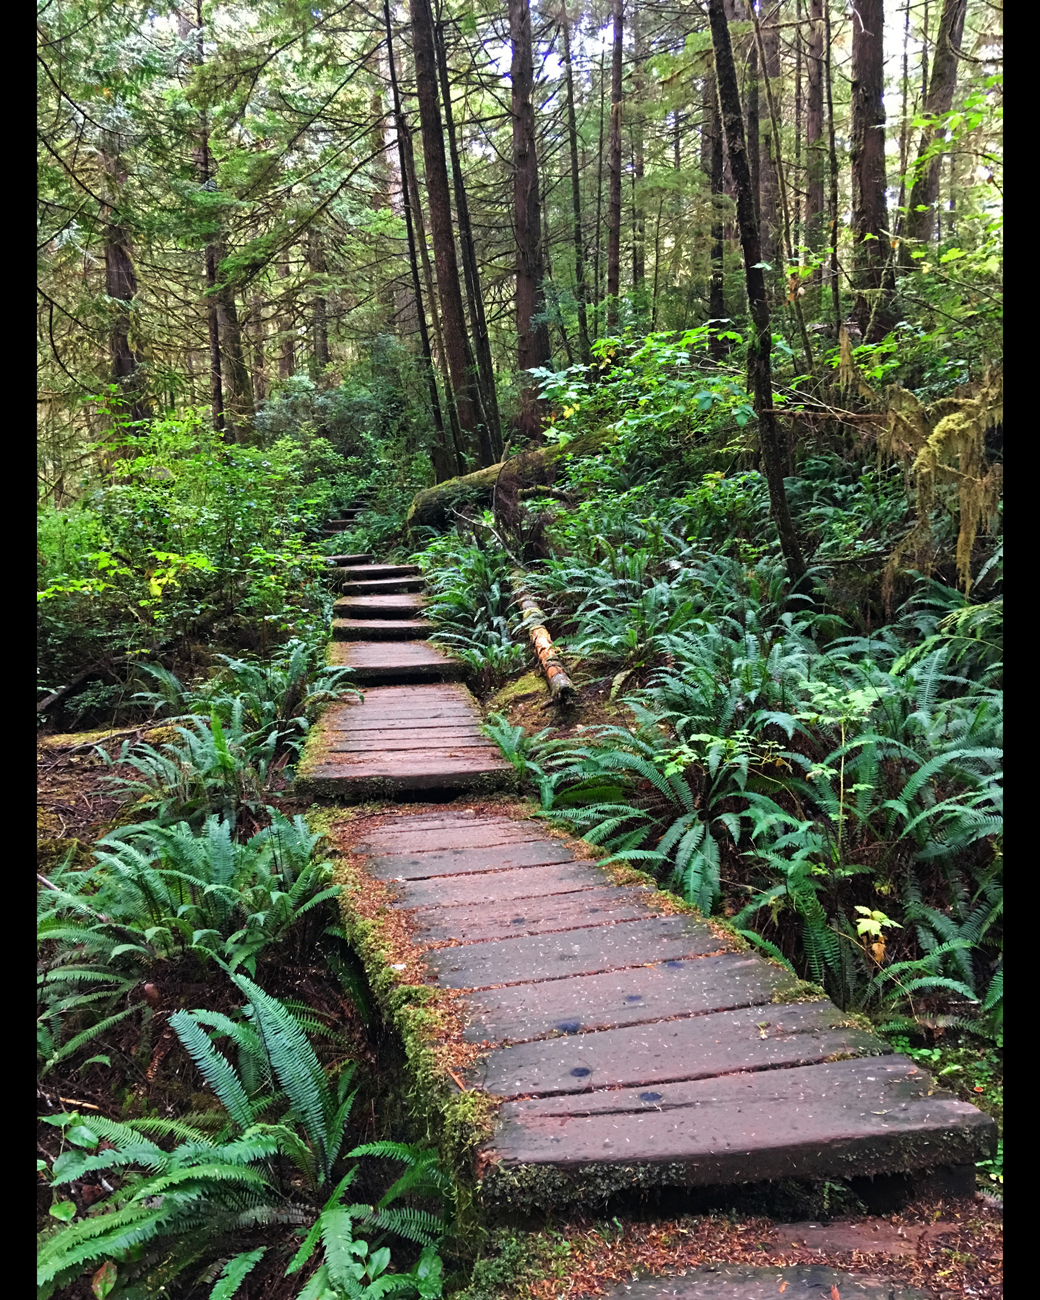 Boardwalk on Cape Alava Trail surrounded by ferns, bright green shrubs and conifers